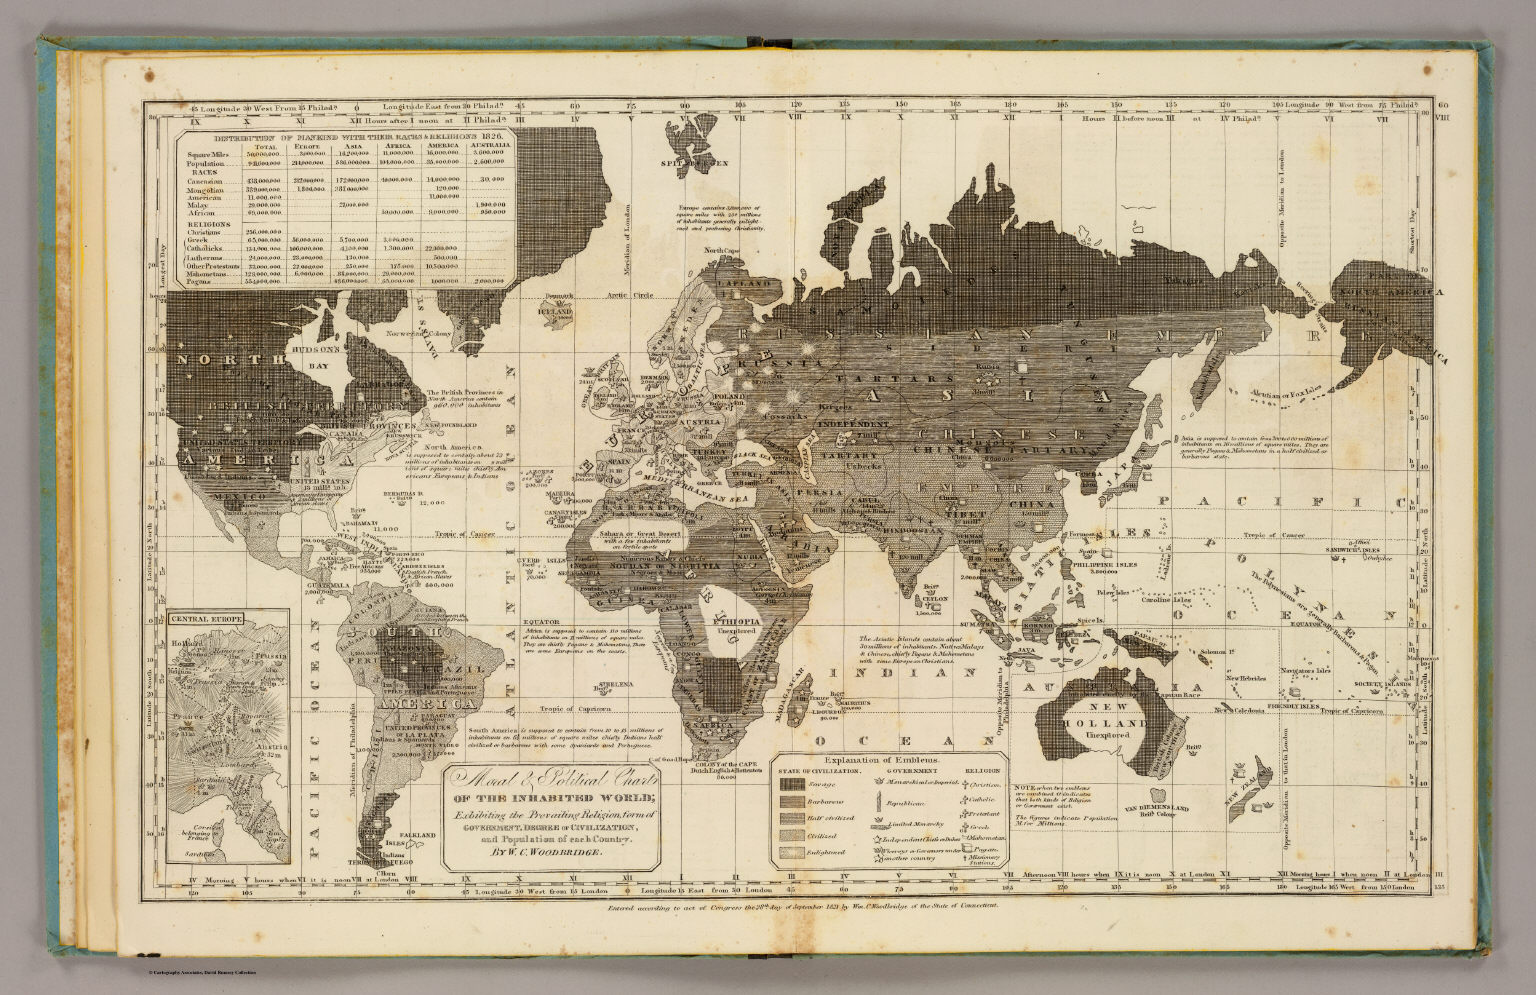 Moral political world david rumsey historical map collection moral political world gumiabroncs Image collections